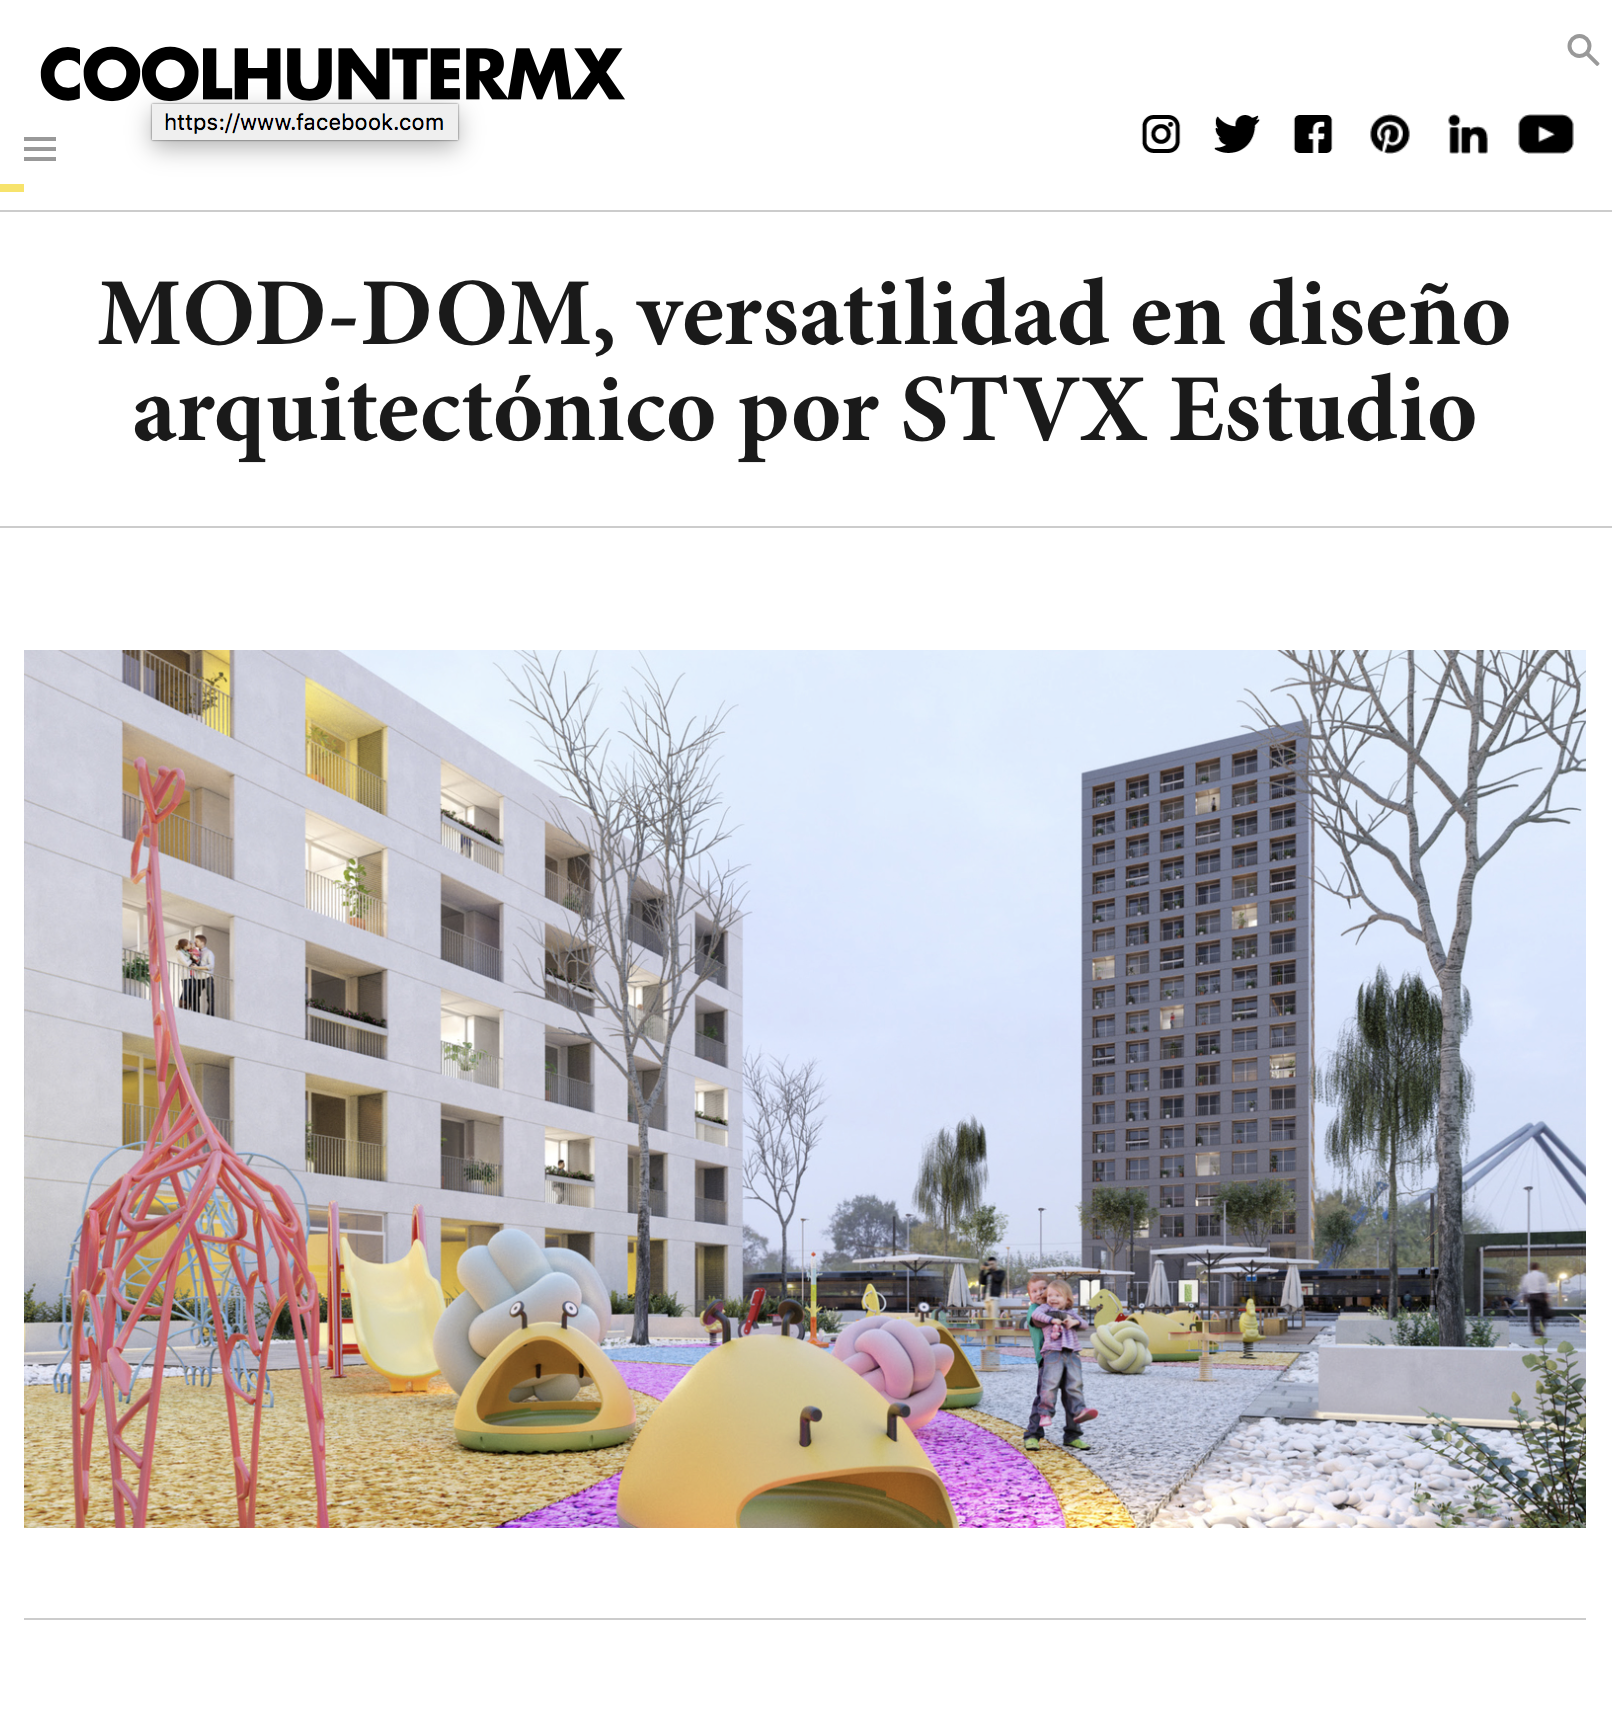 Coolhunter MX